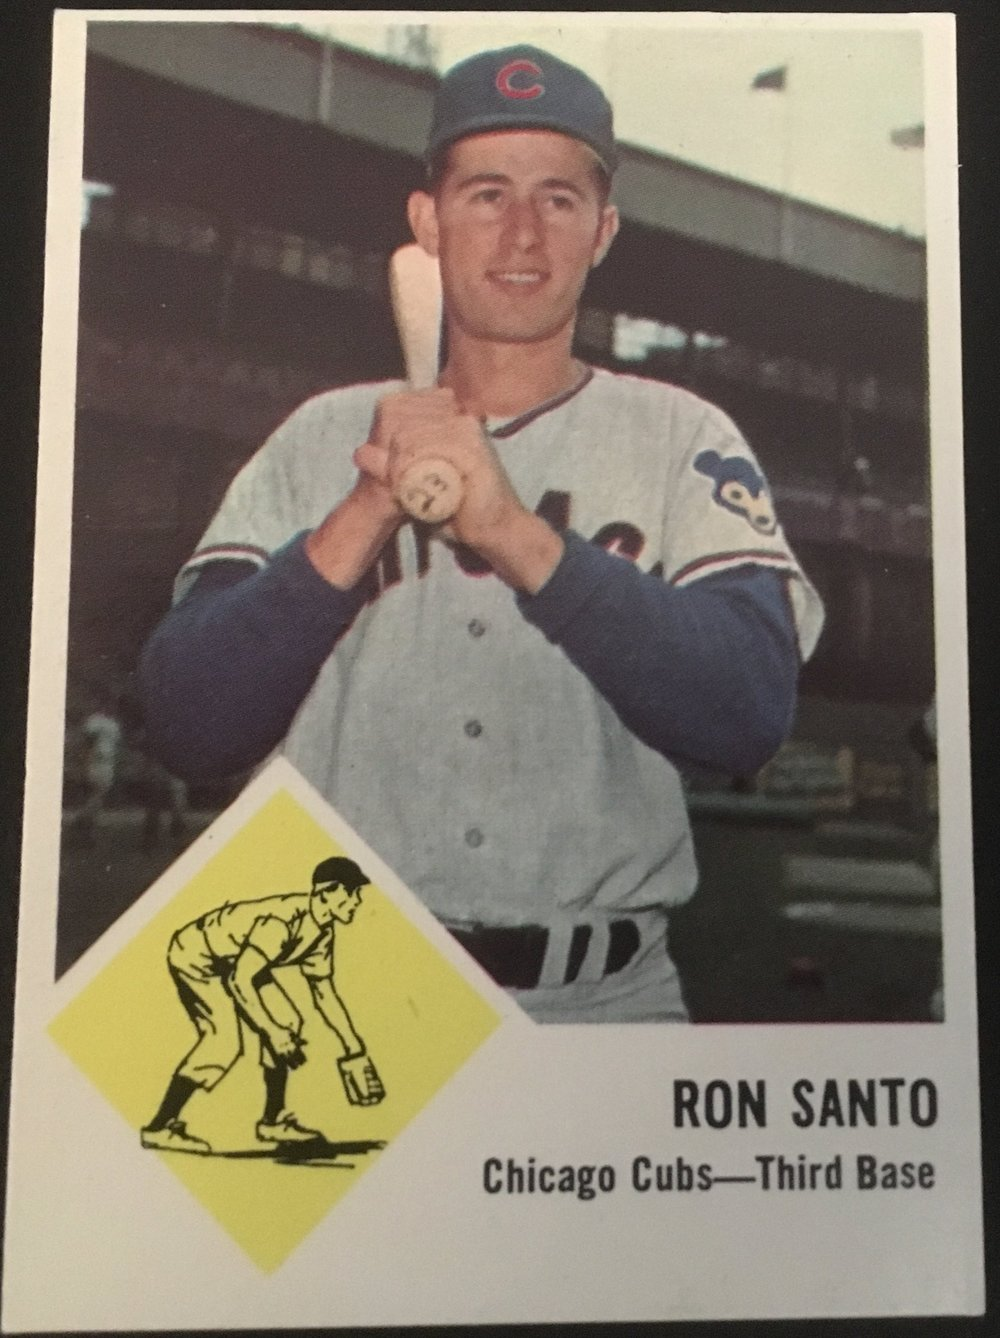 Santo is my favorite Cub in the checklist!